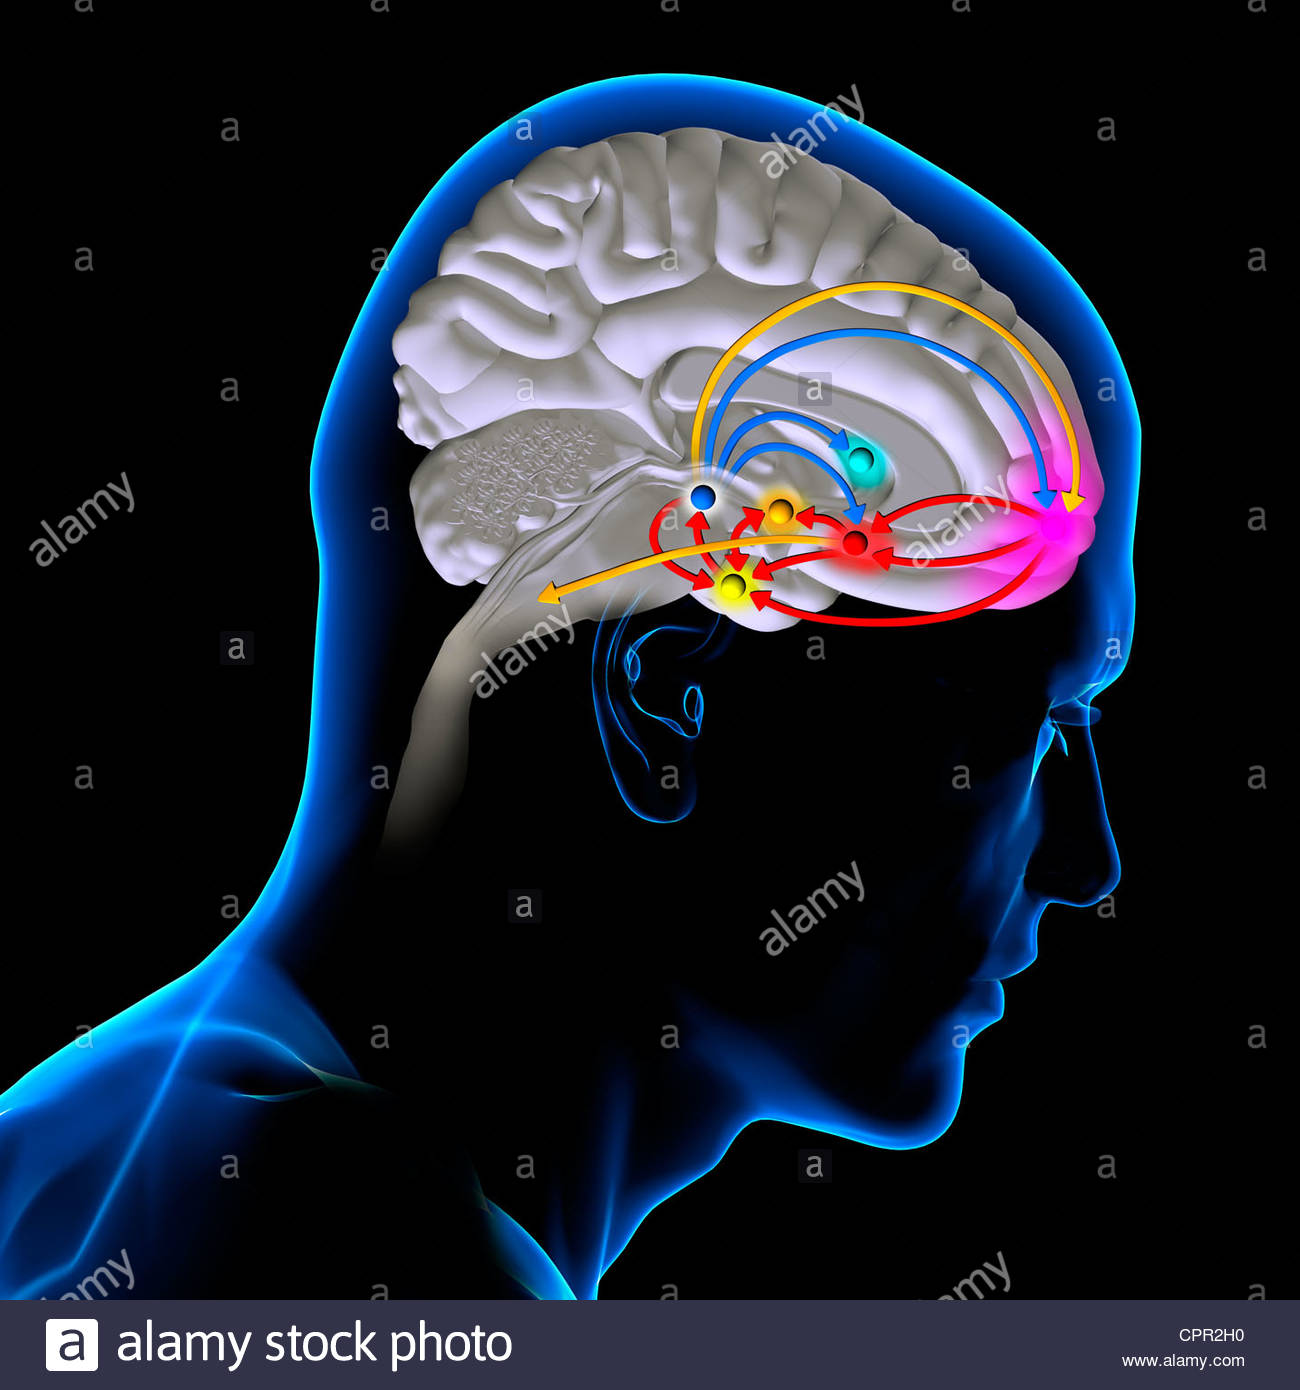 BRAIN REWARD SYSTEM - Stock Image